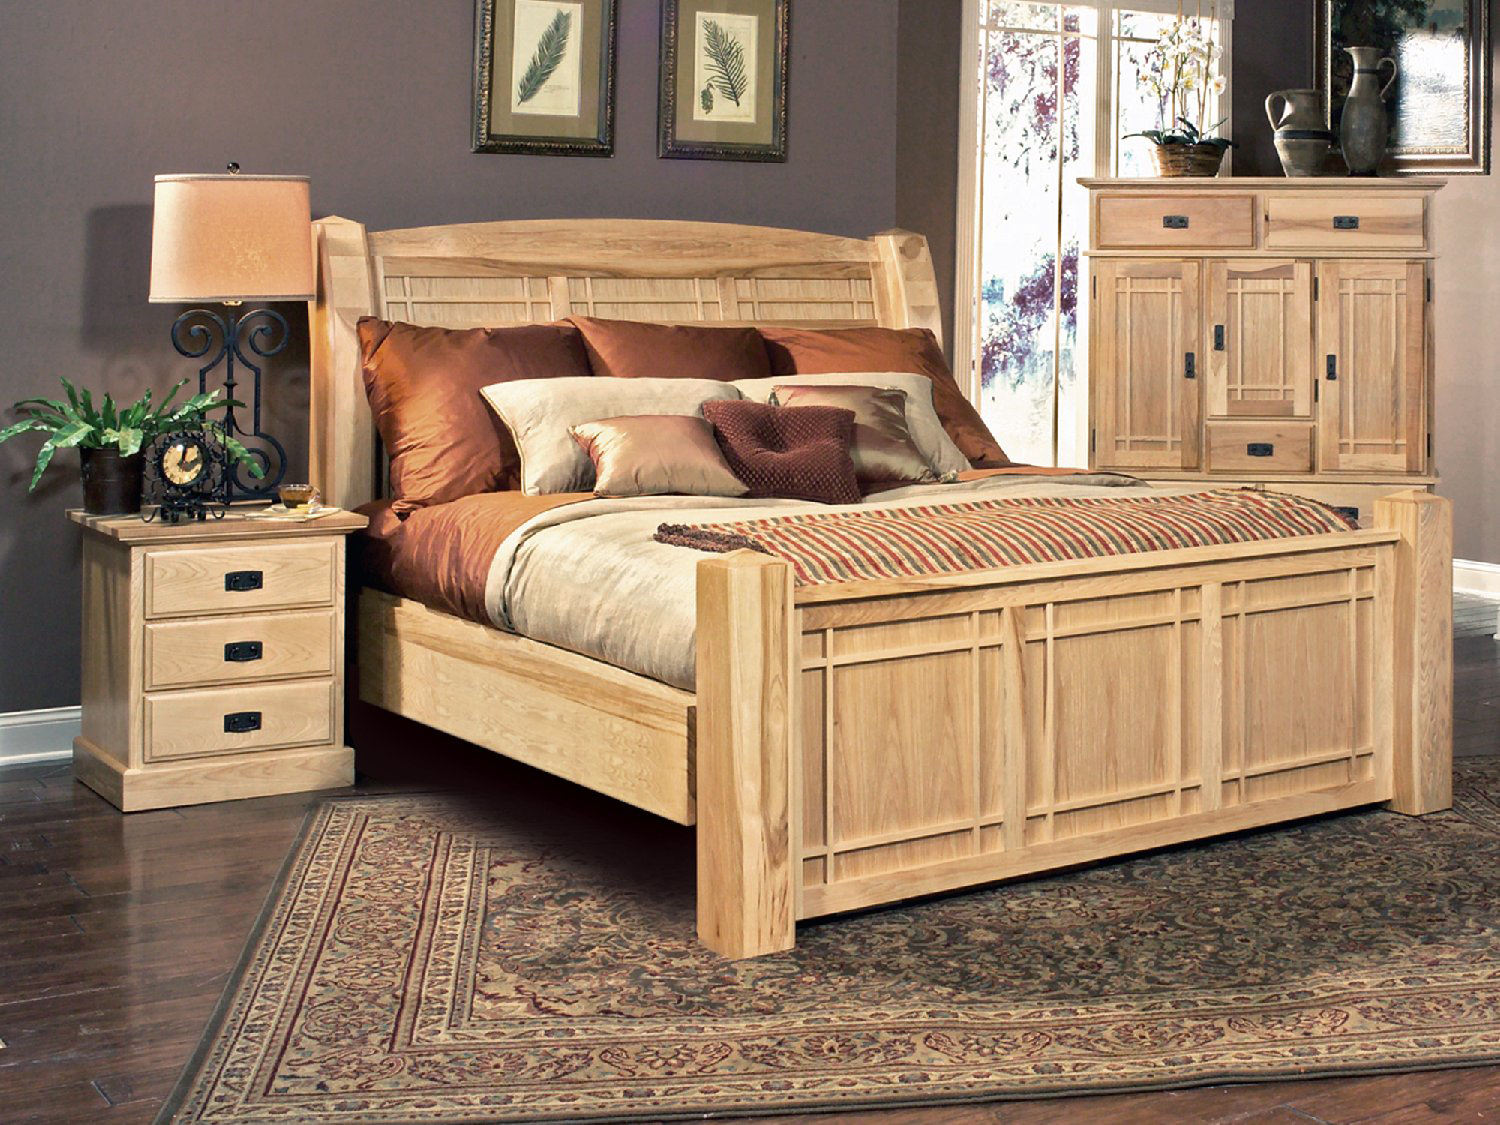 Hickory Highlands Queen Arch Bedroom Suite Without Storage Drawers ...